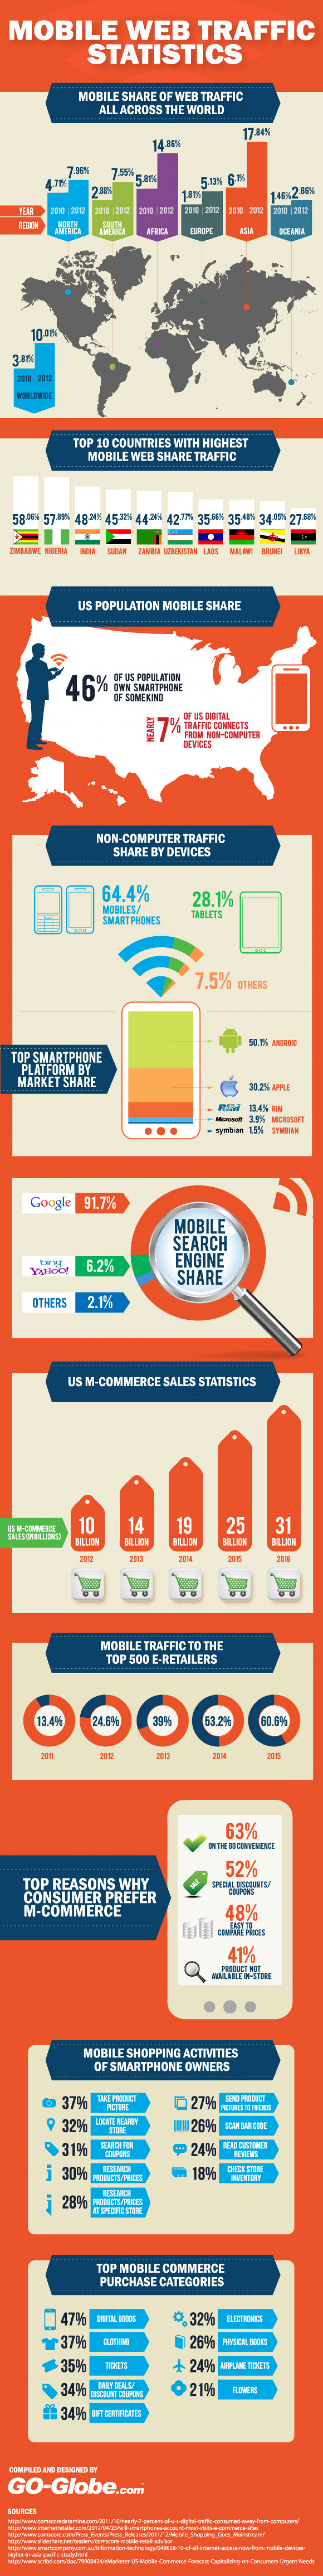 Mobile Web Traffic Statistics Infographic